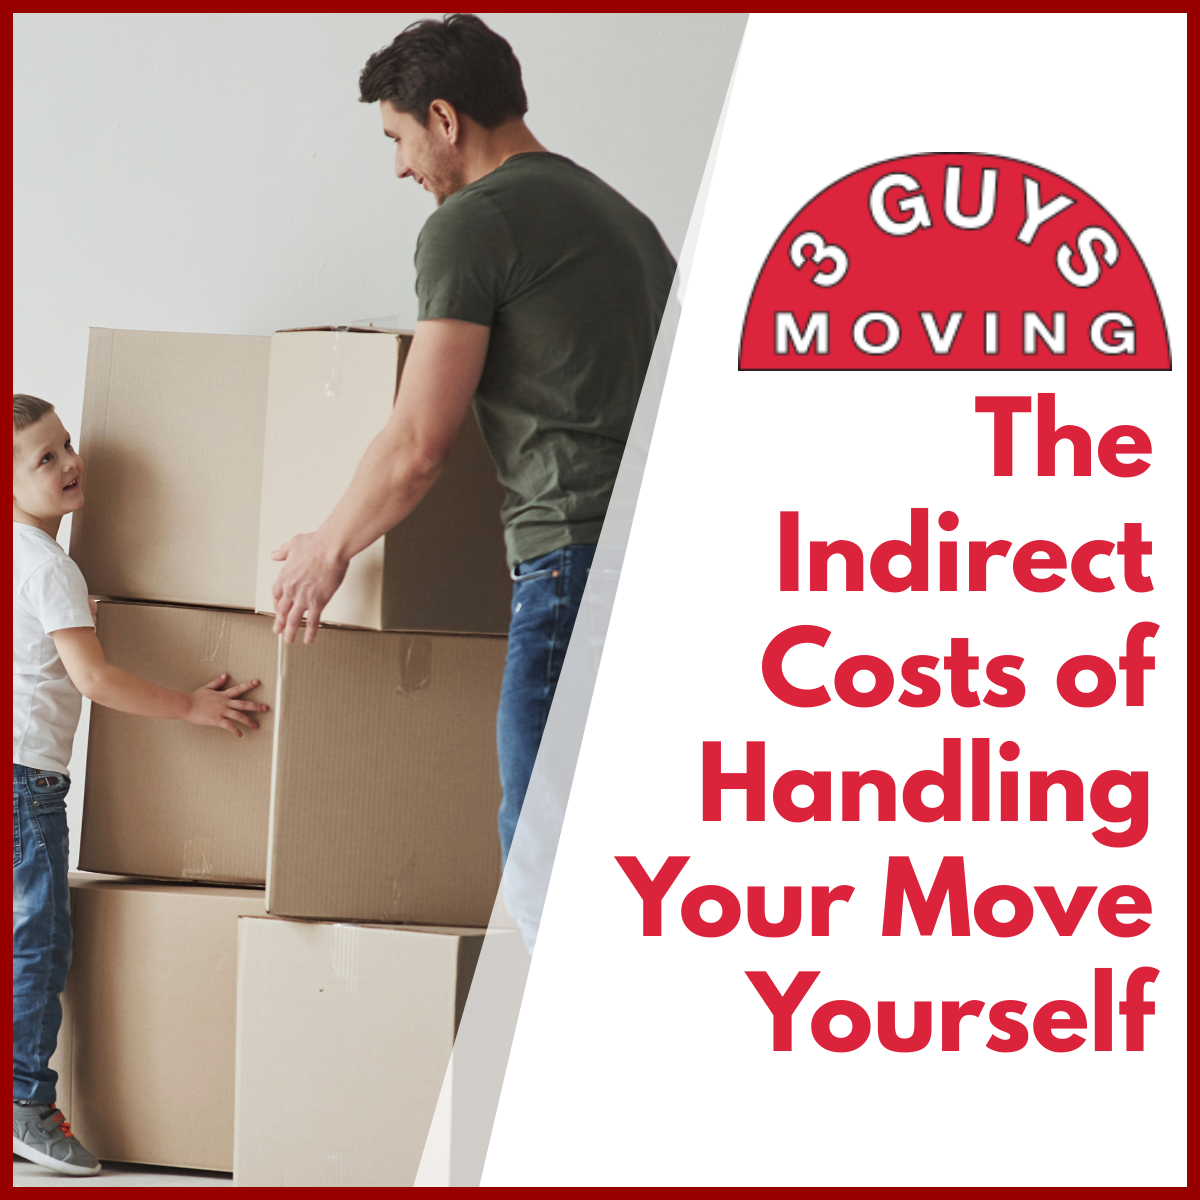 Indirect Costs of Handling Your Move Yourself - The Indirect Costs of Handling Your Move Yourself